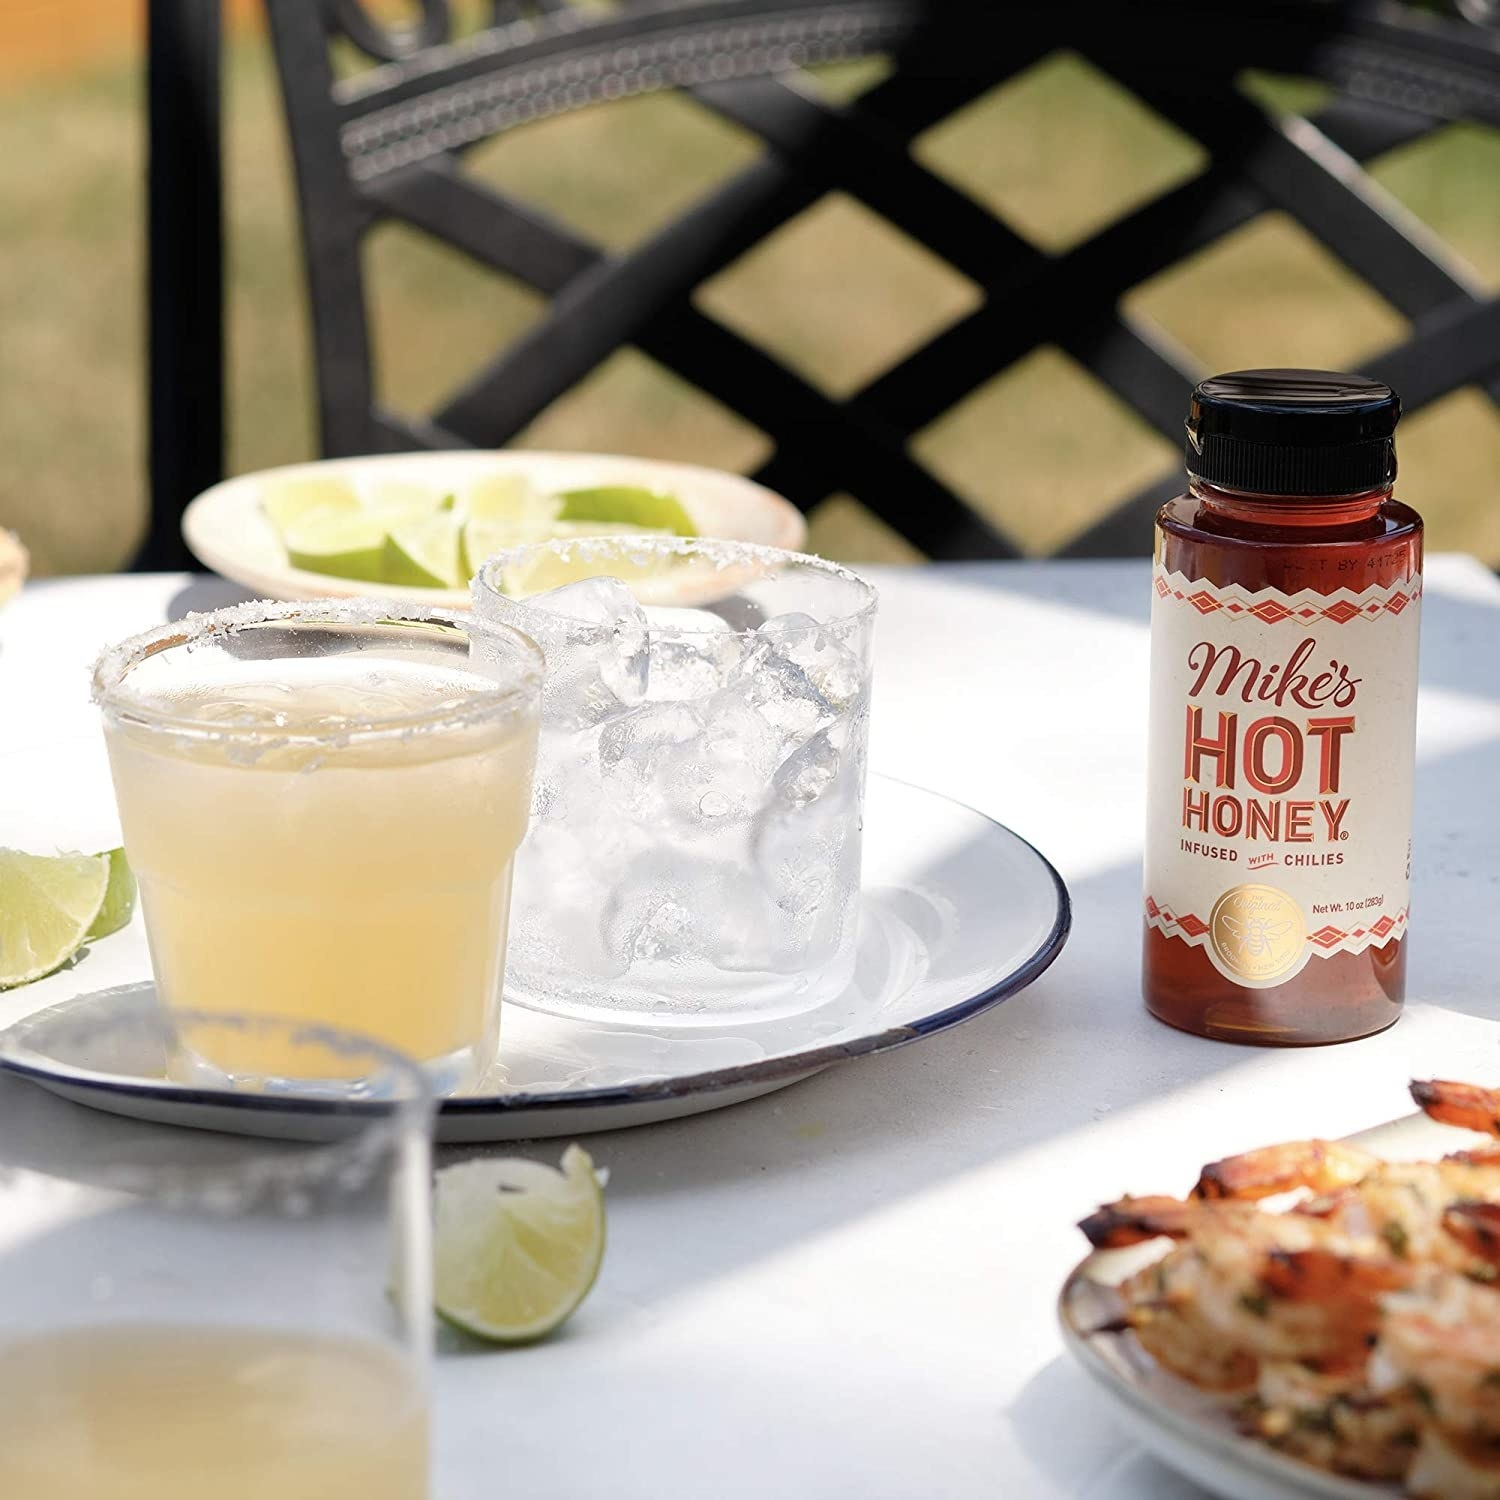 The bottle of hot honey next to a cocktail